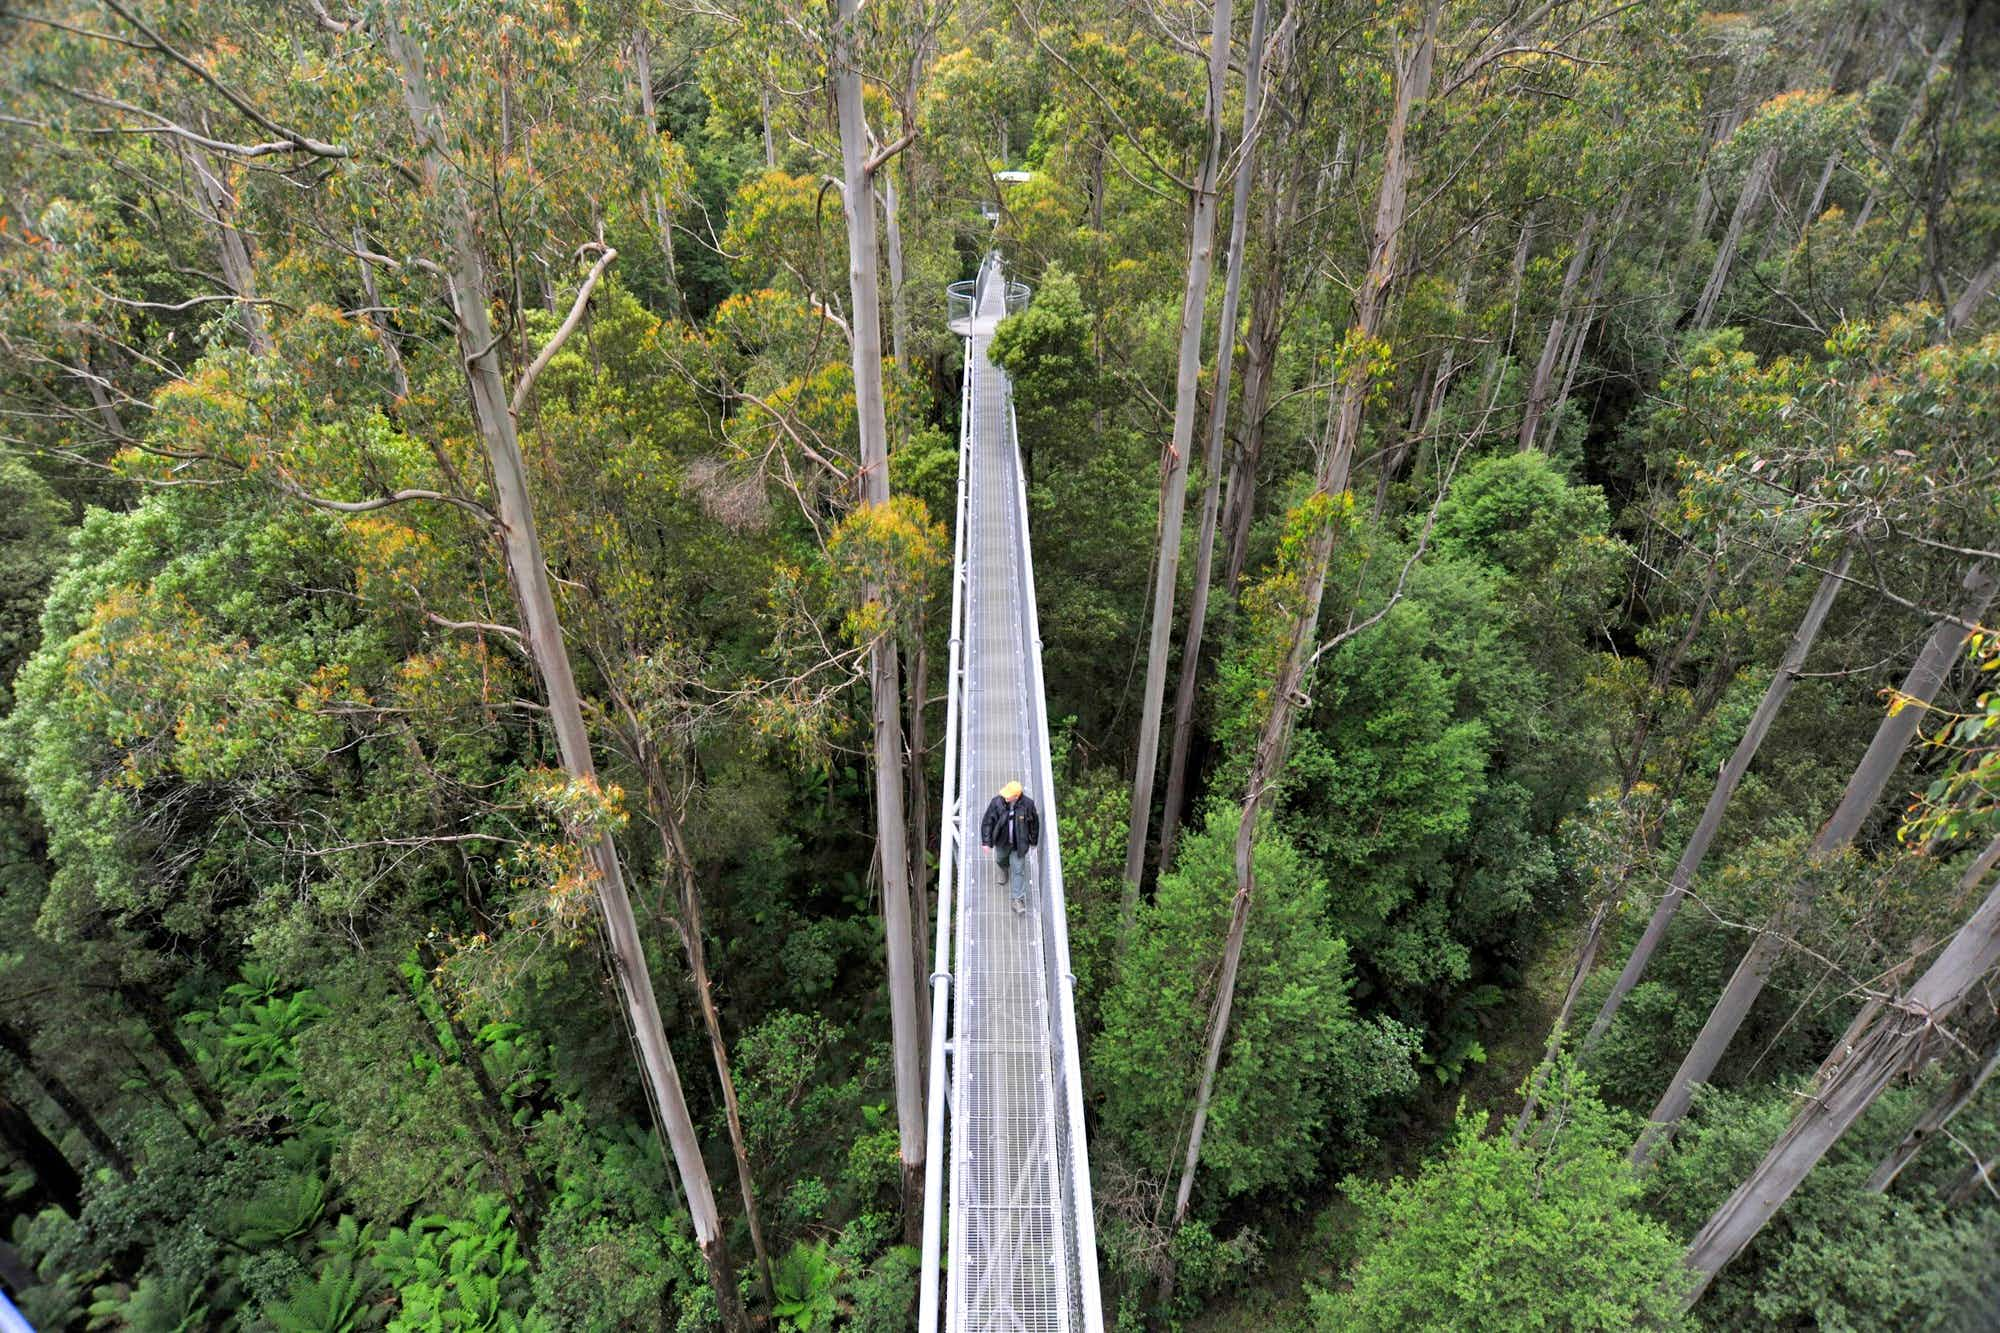 An off-grid eco zipwire park has opened on the Great Ocean Road in Australia